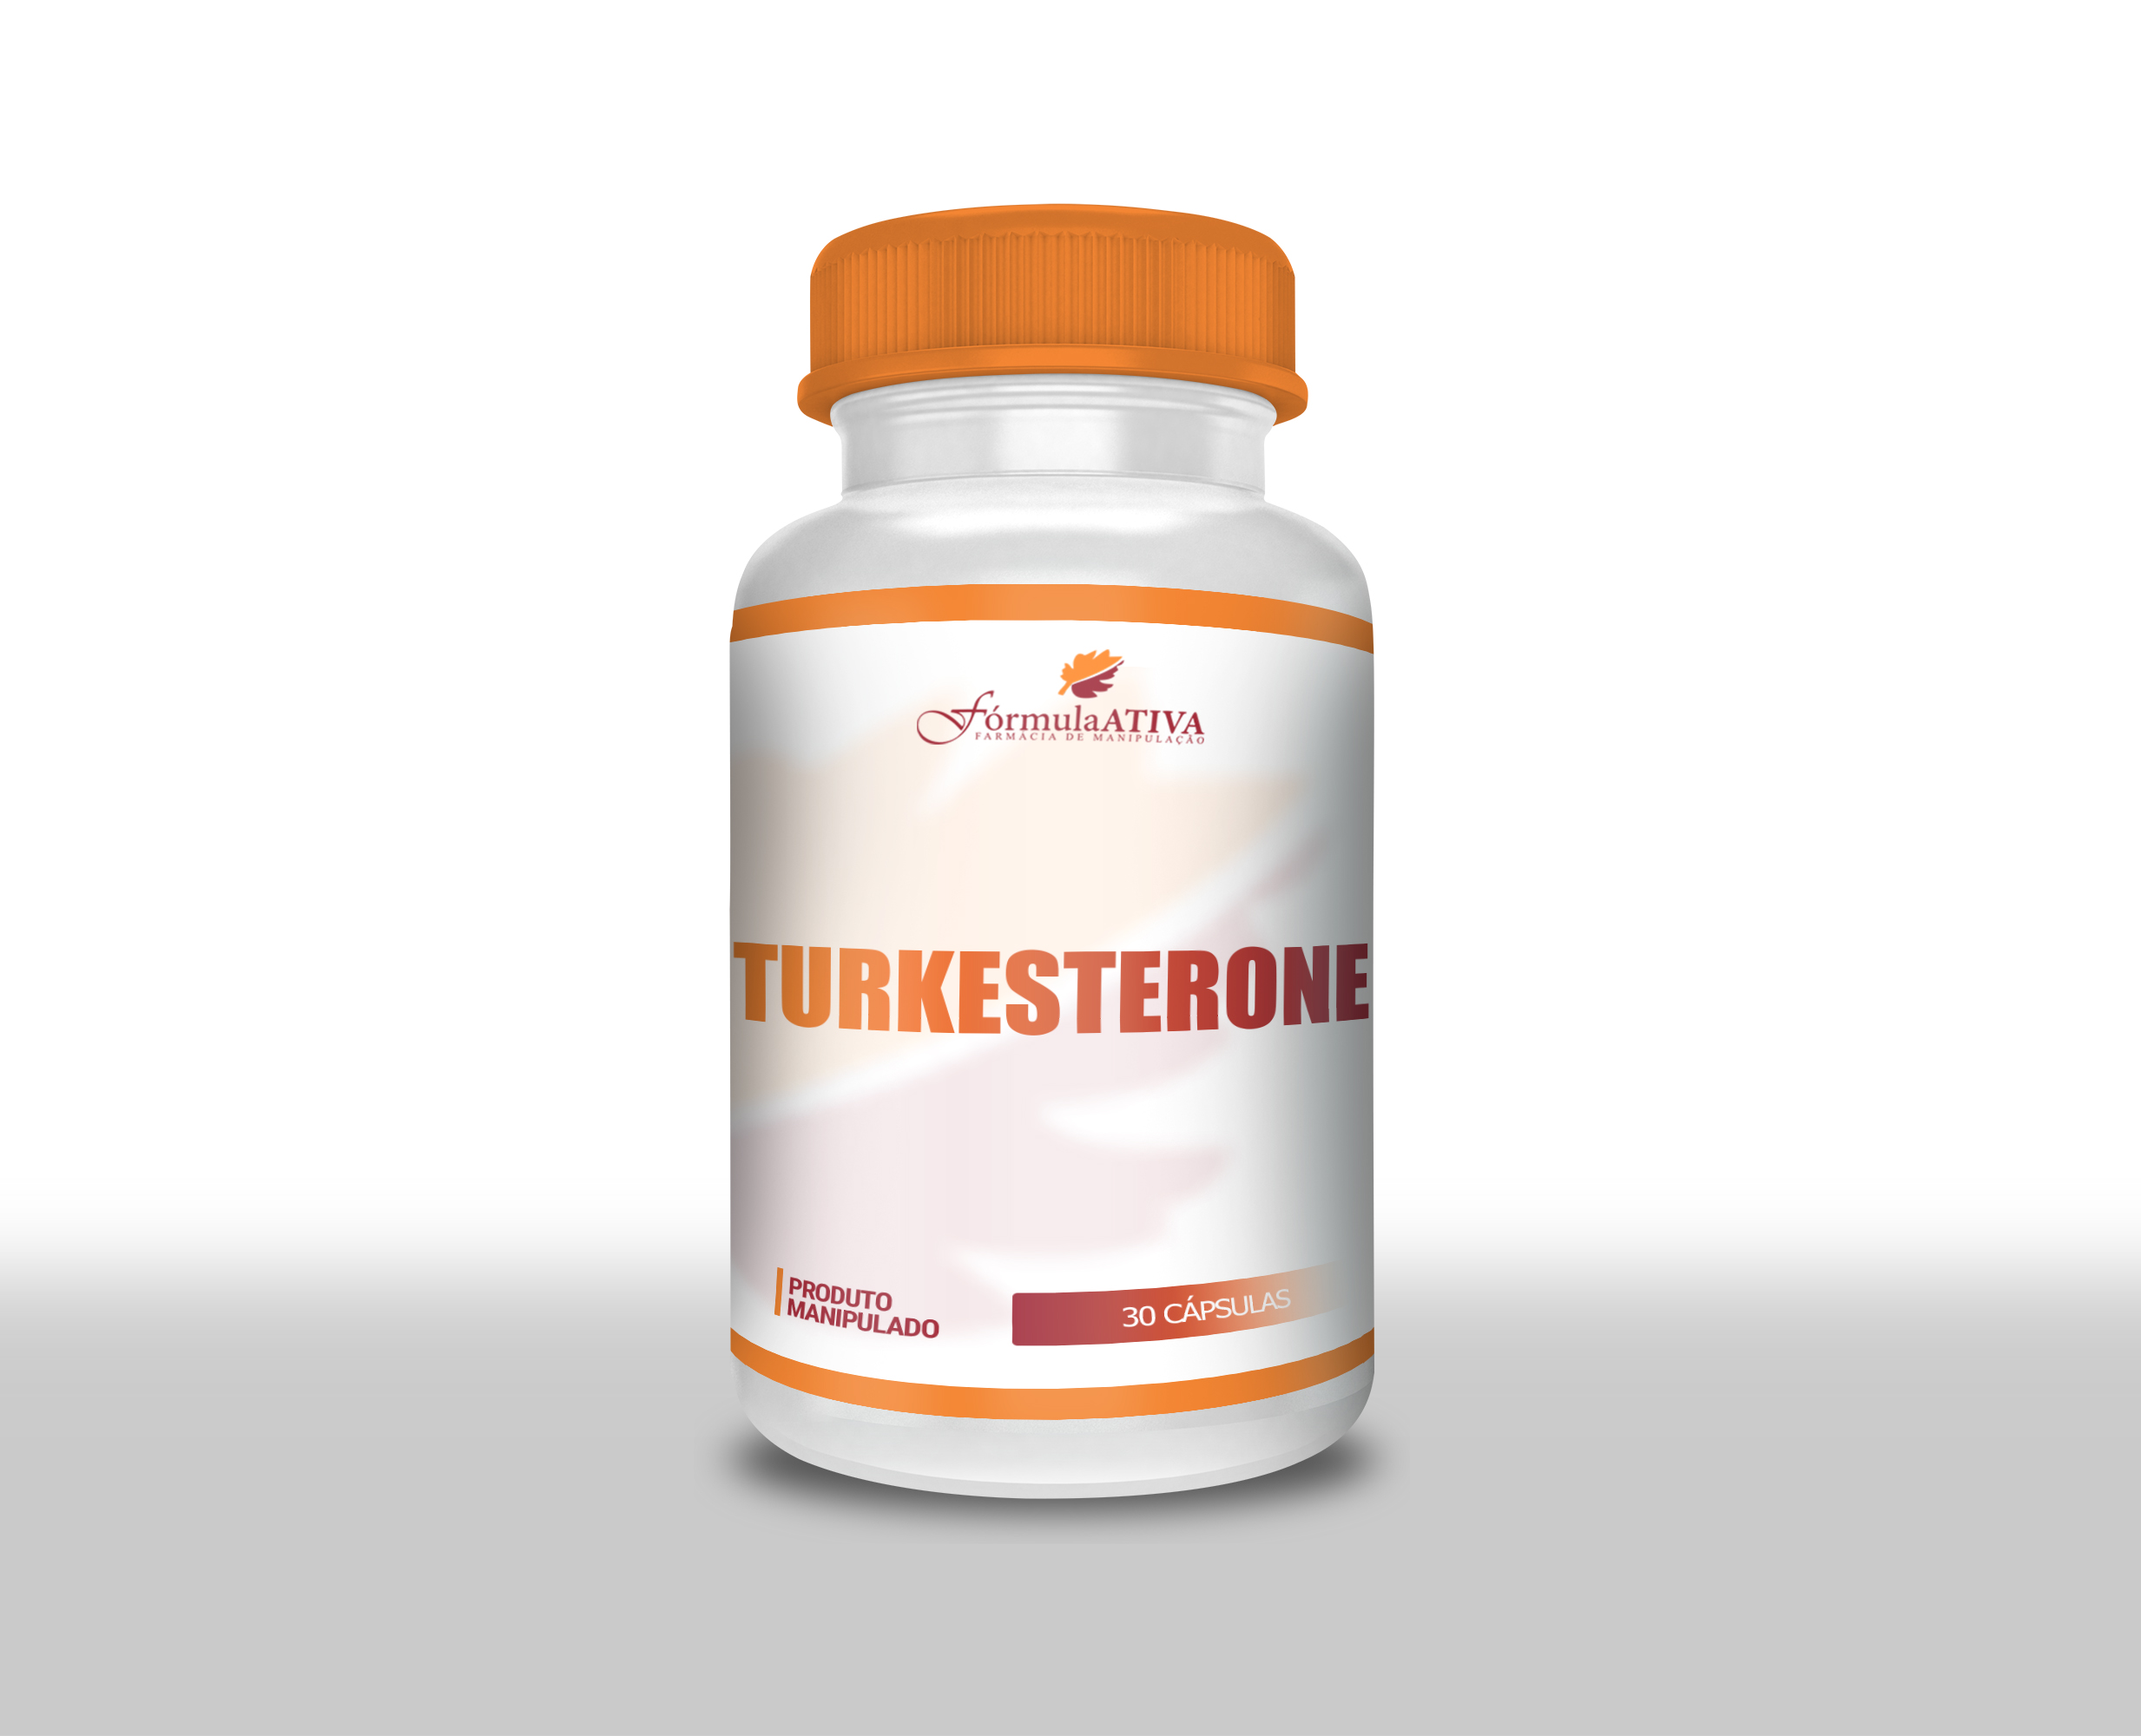 Turkesterone (500mg - 30 doses)